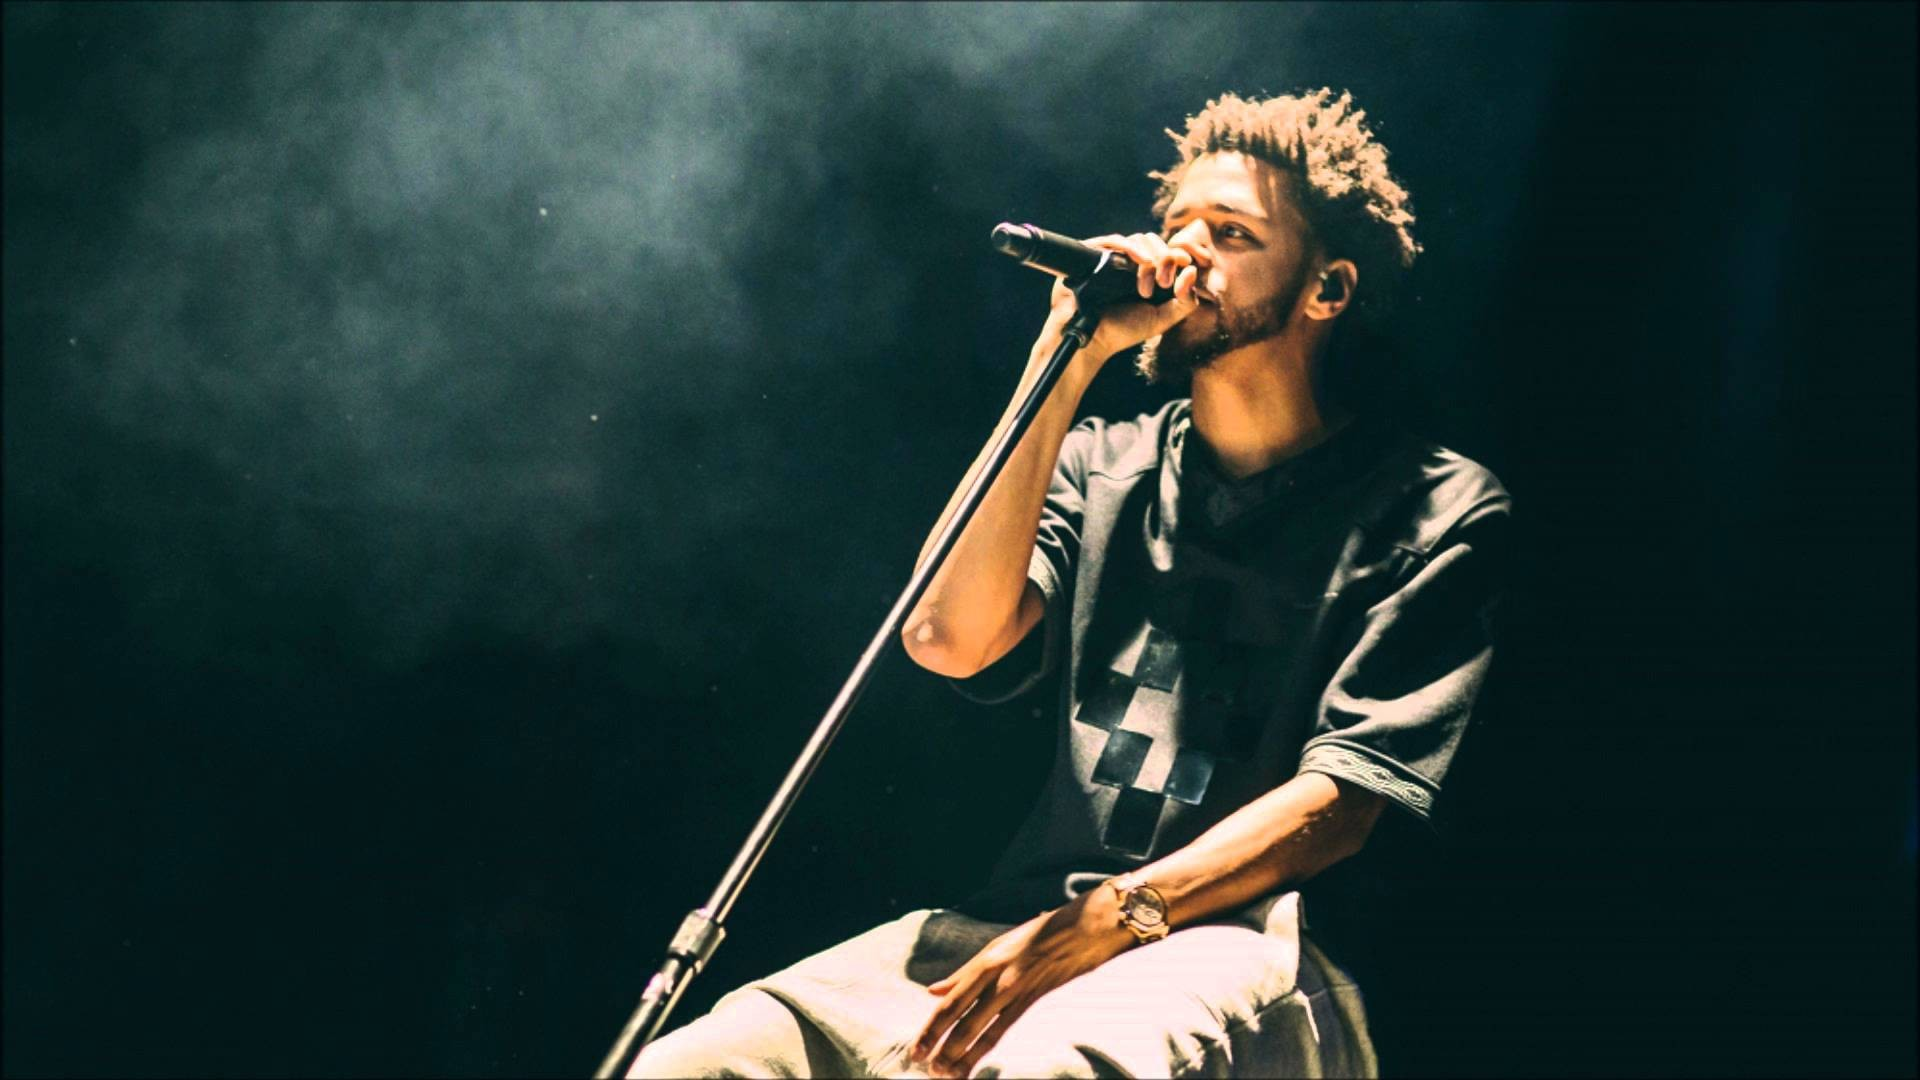 J Cole Wallpaper Download Free Cool Full Hd Backgrounds For